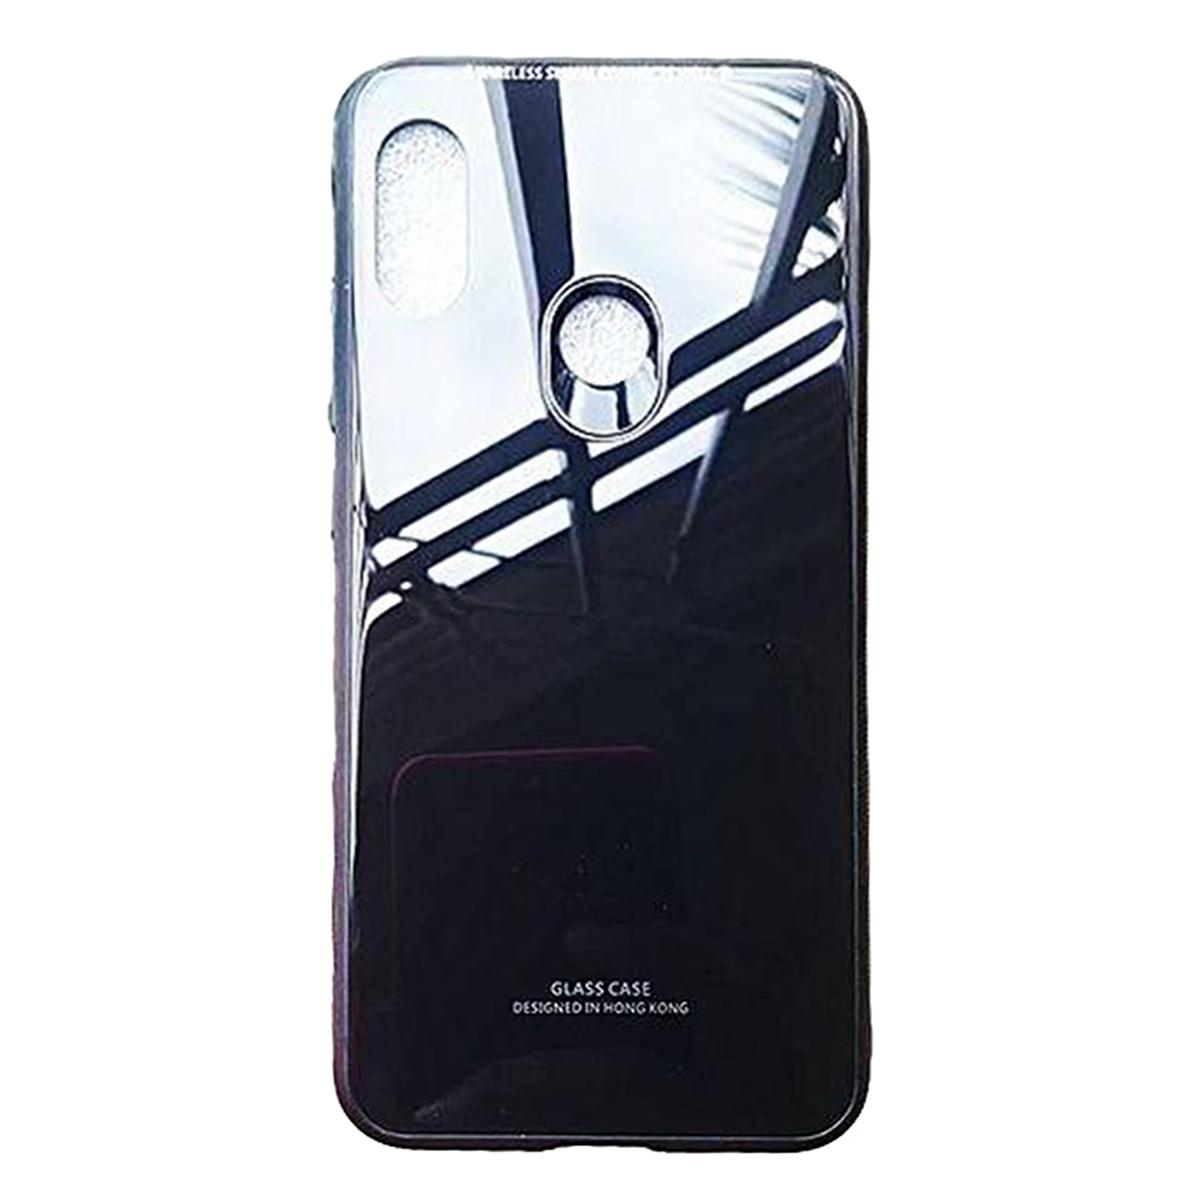 Mobile Phone Cover In Bangladesh At Best Price Case Xiaomi Redmi Note 5 Pro Hardcase 360 Full Protective S2 Tempered Glass Black